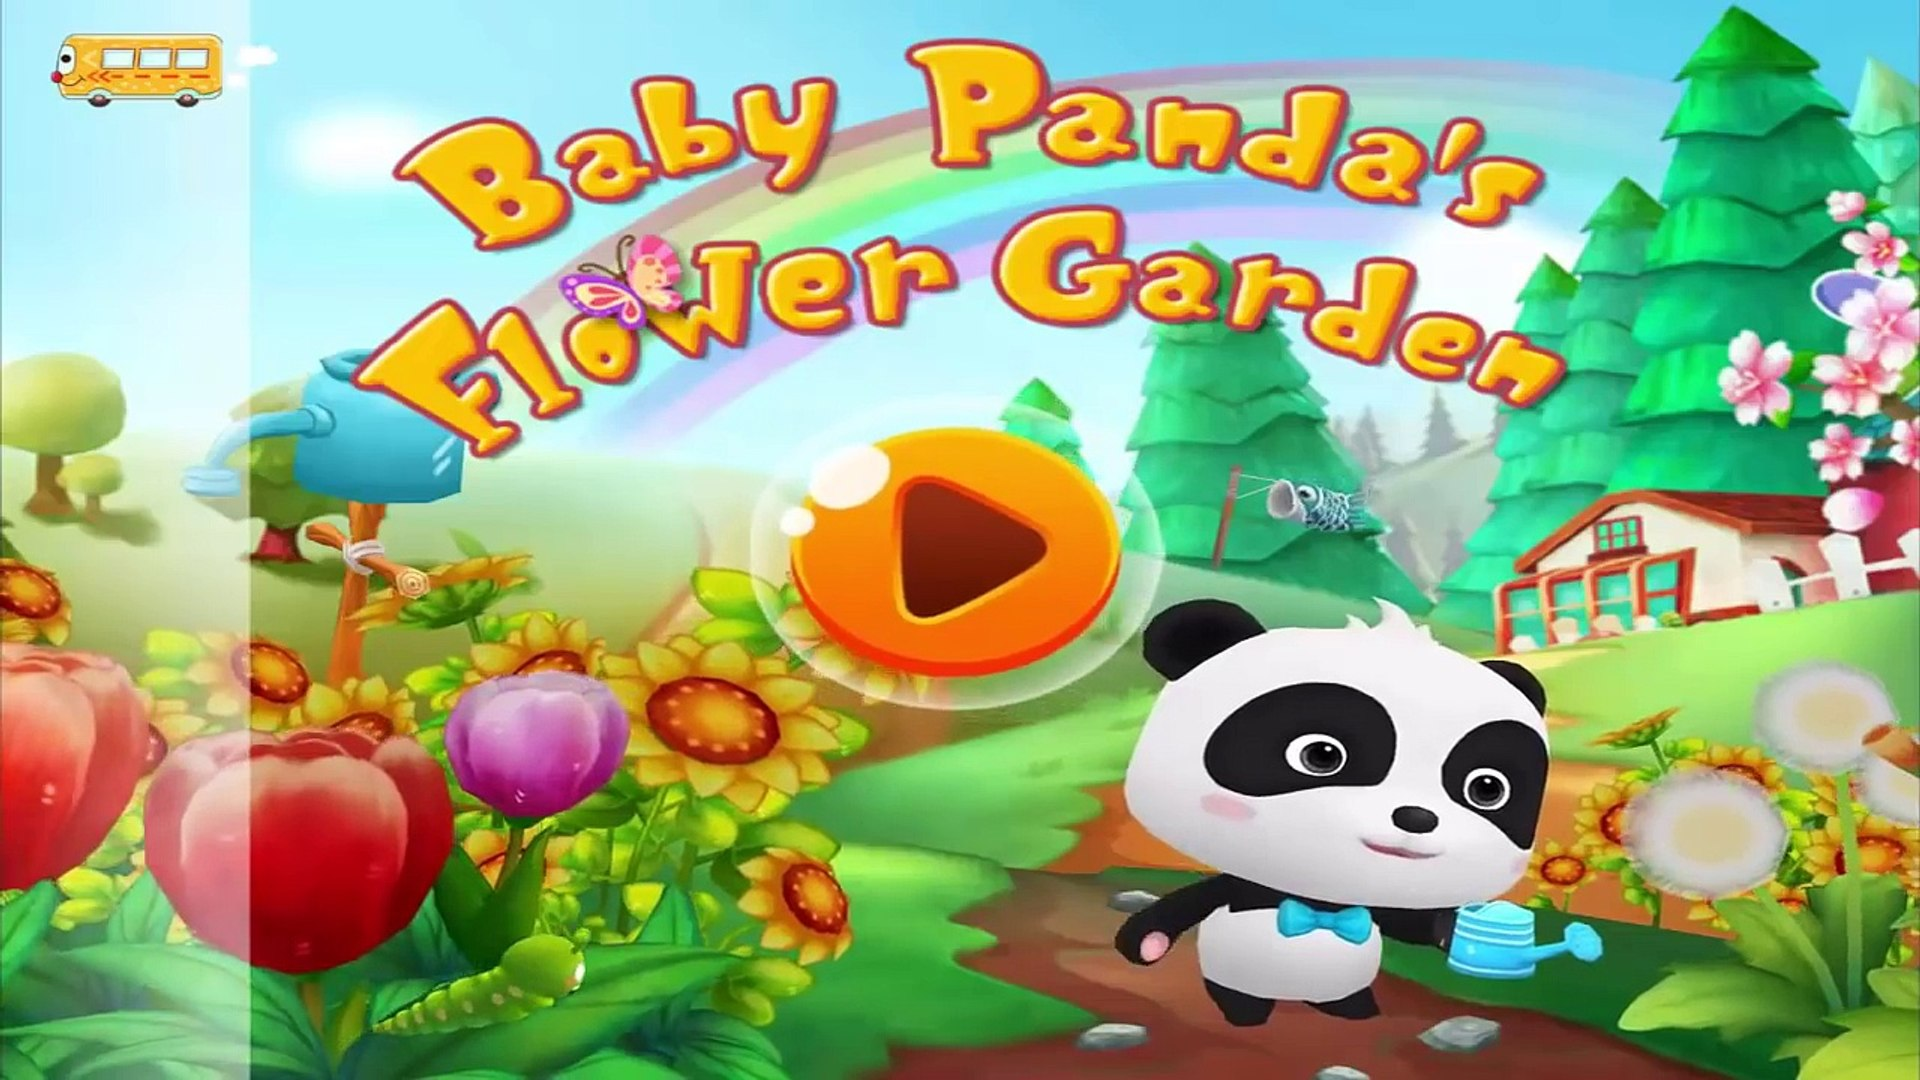 Baby Pandas Flower Garden - Babybus Gameplay Video include Baby Farming, Planting & Harve